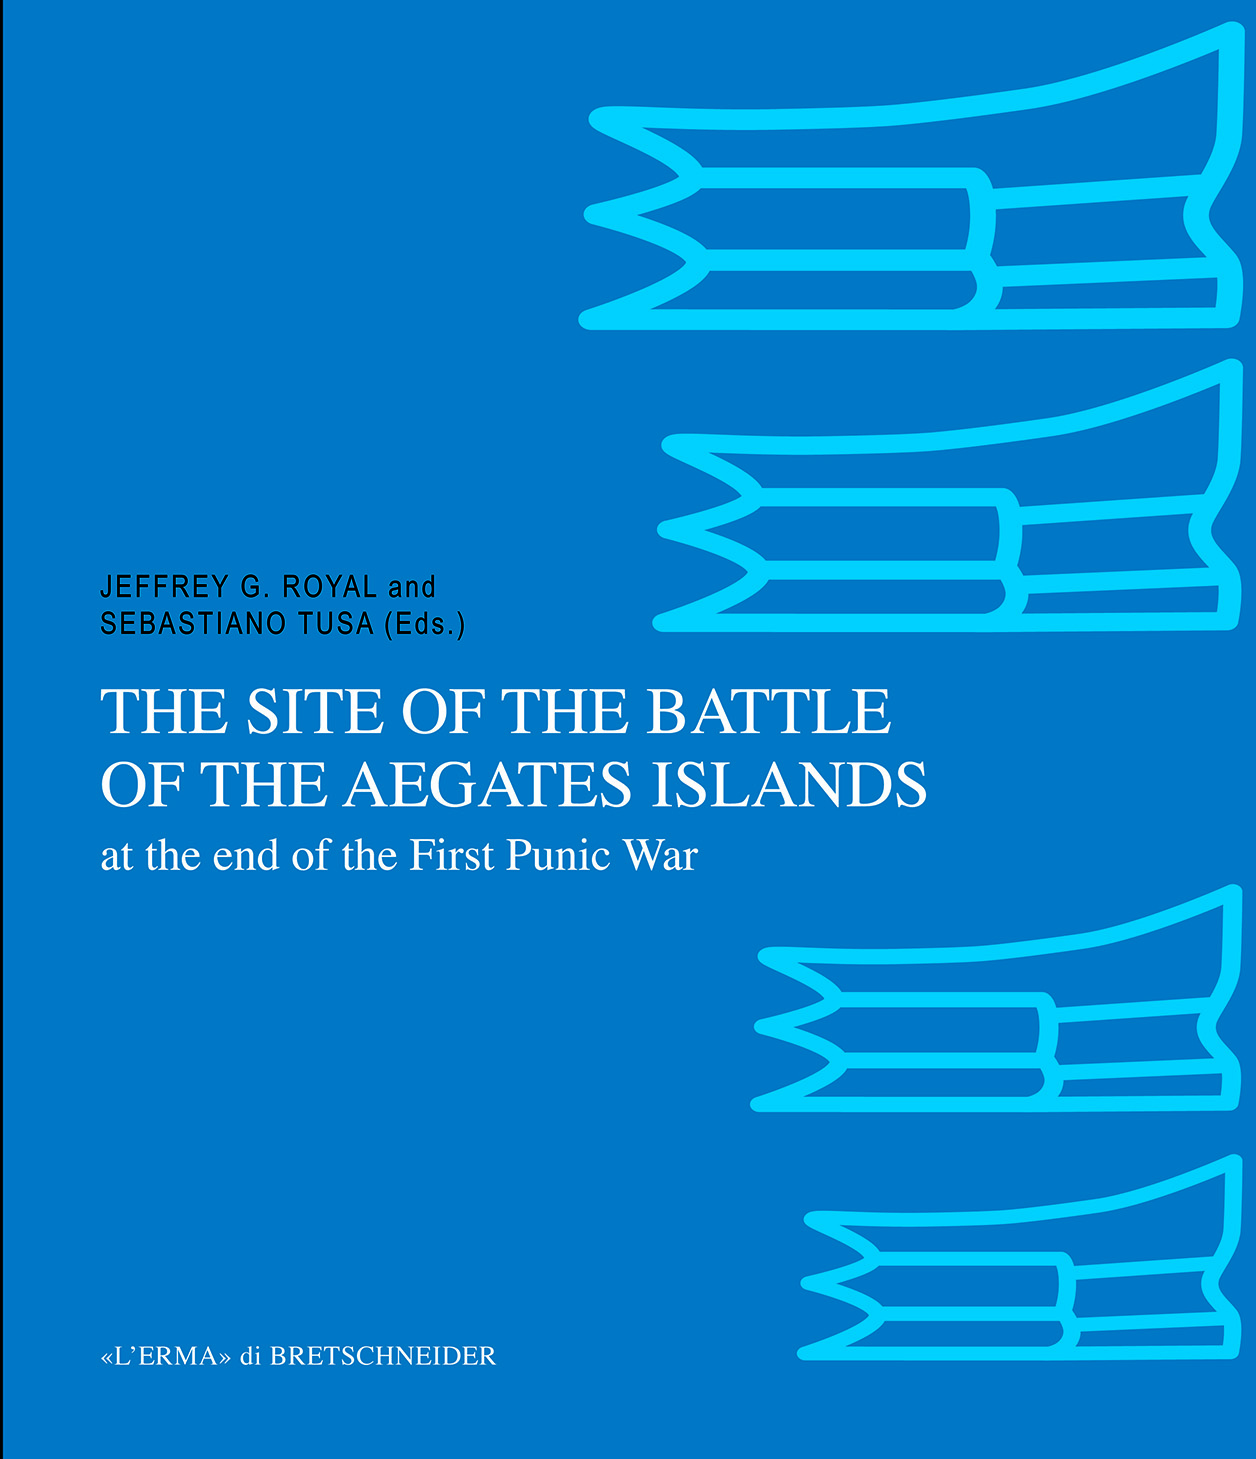 The Site of the Battle of the Aegates Islands at the end of the First Punic War